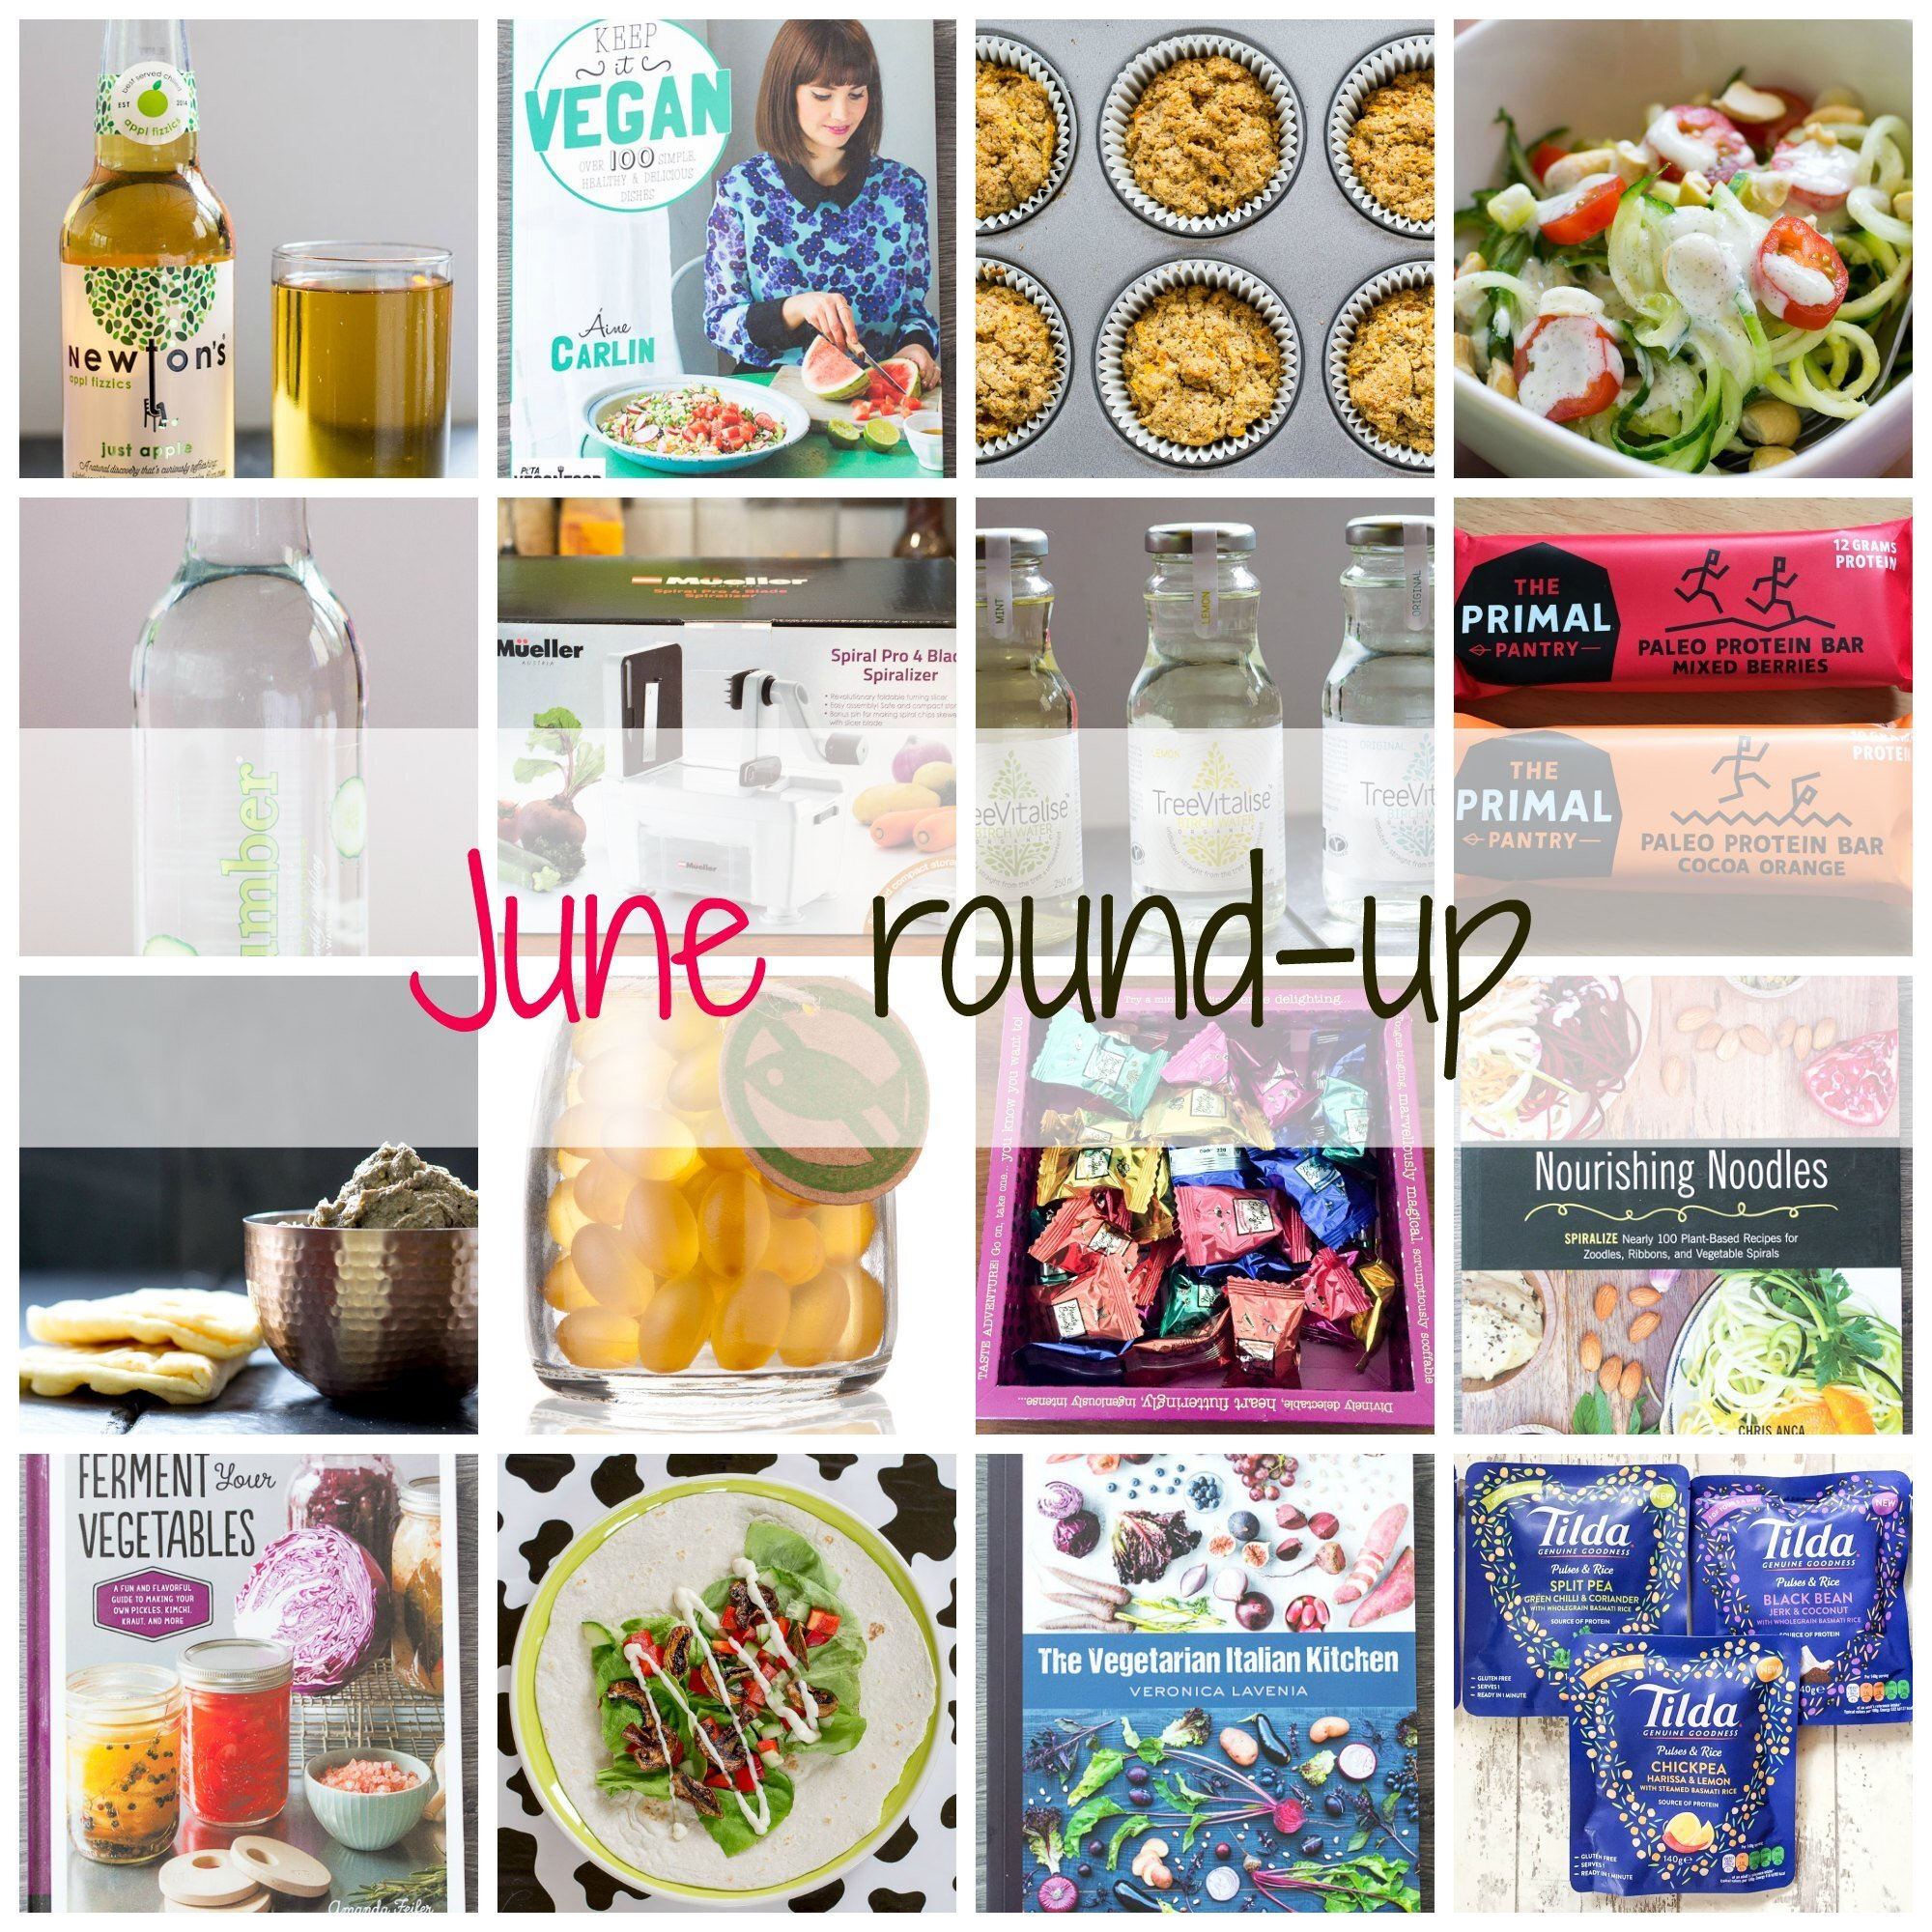 June Round-Up (and why I'm probably banned from Papa John's)